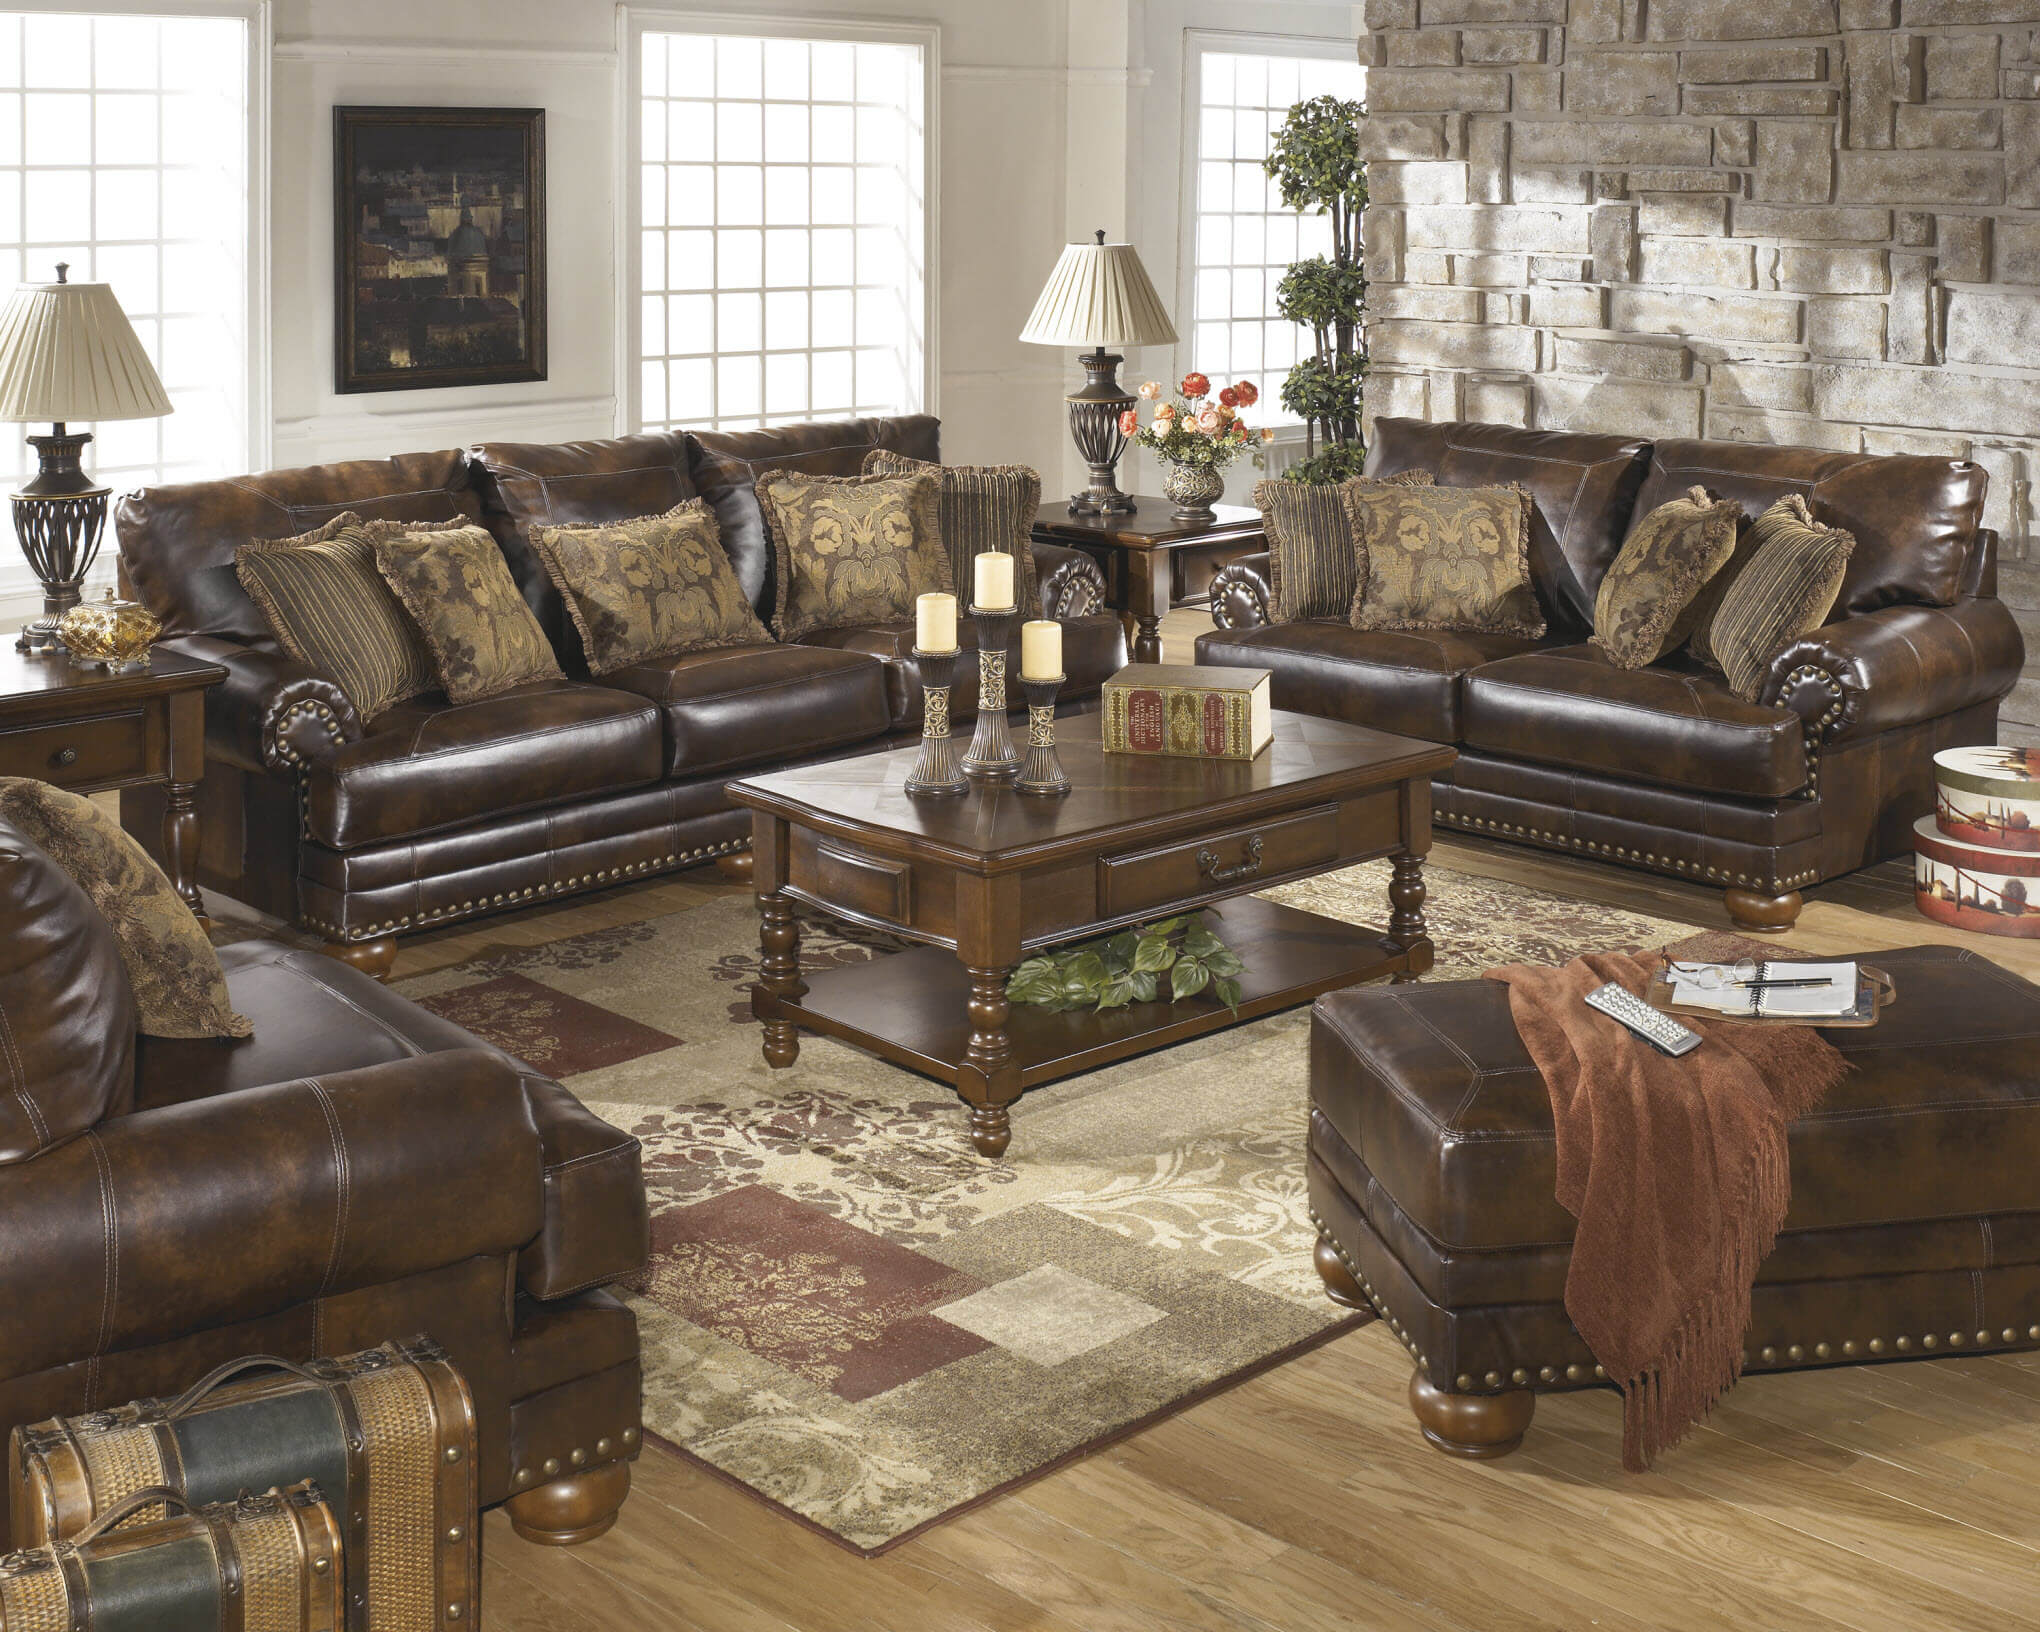 Swell 99200 Antique Bonded Leather Sofa And Loveseat Discontinued Bralicious Painted Fabric Chair Ideas Braliciousco